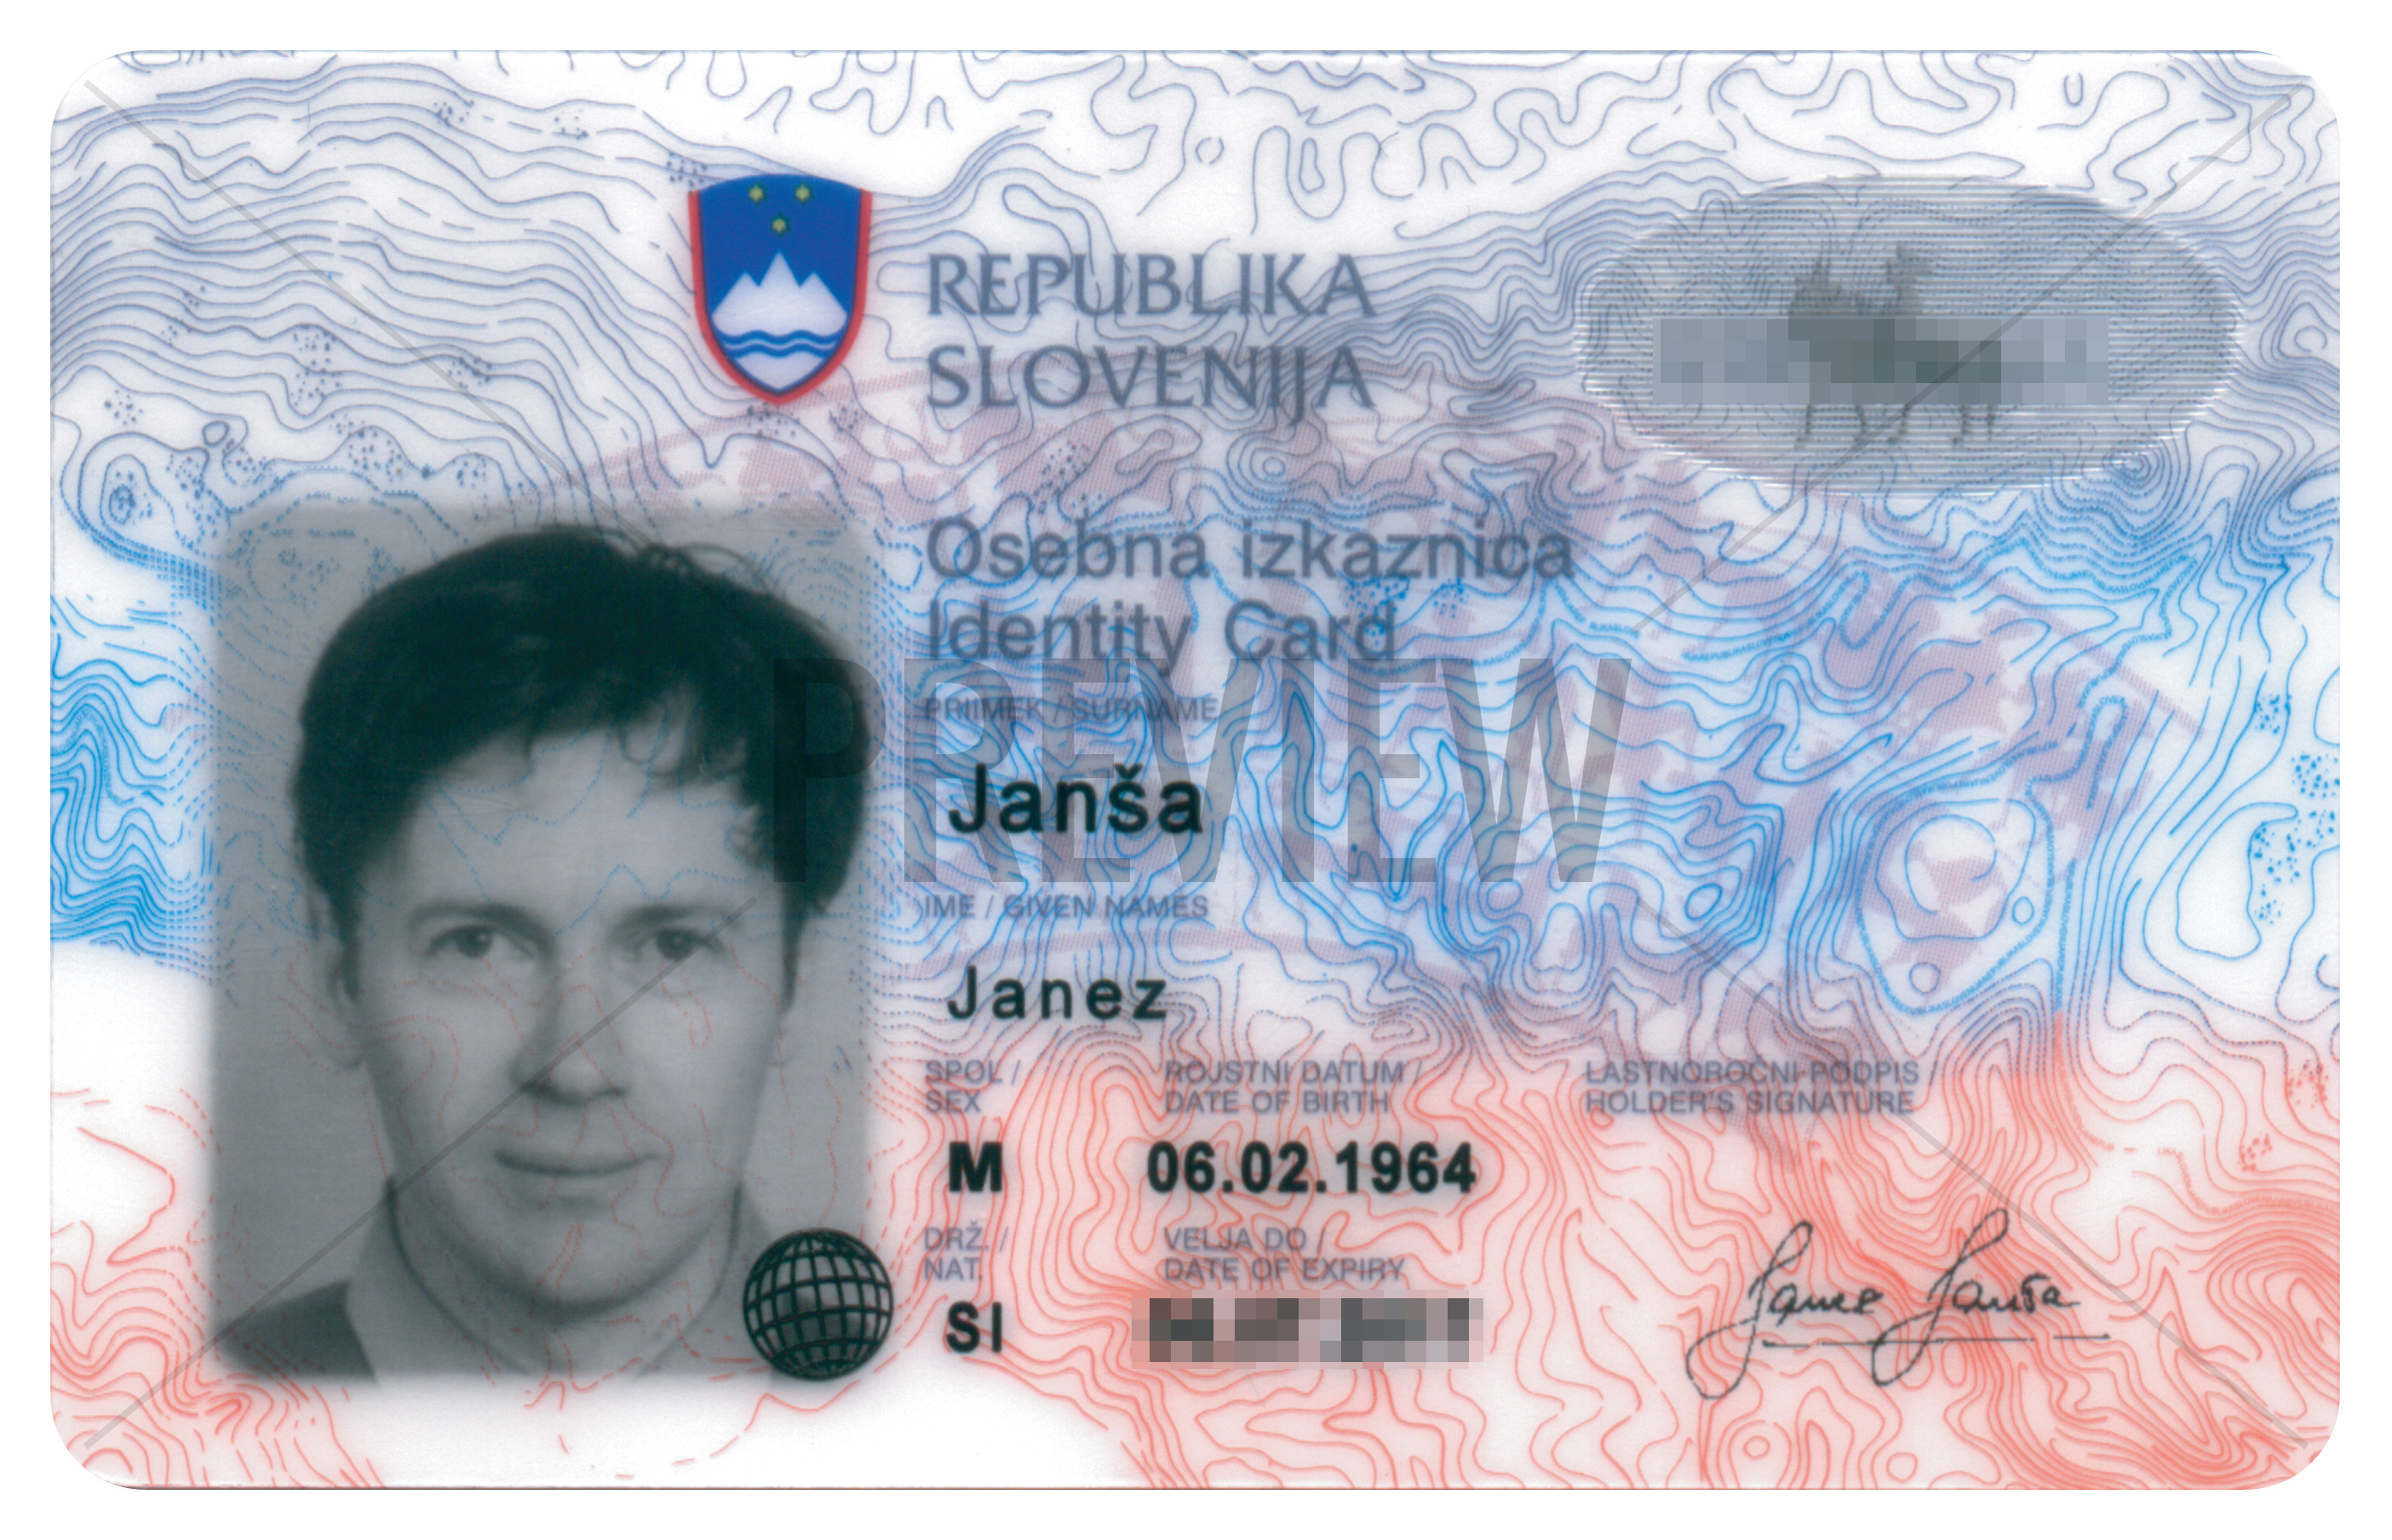 002199341 (Identity Card), Ljubljana, 2007. Print on plastic